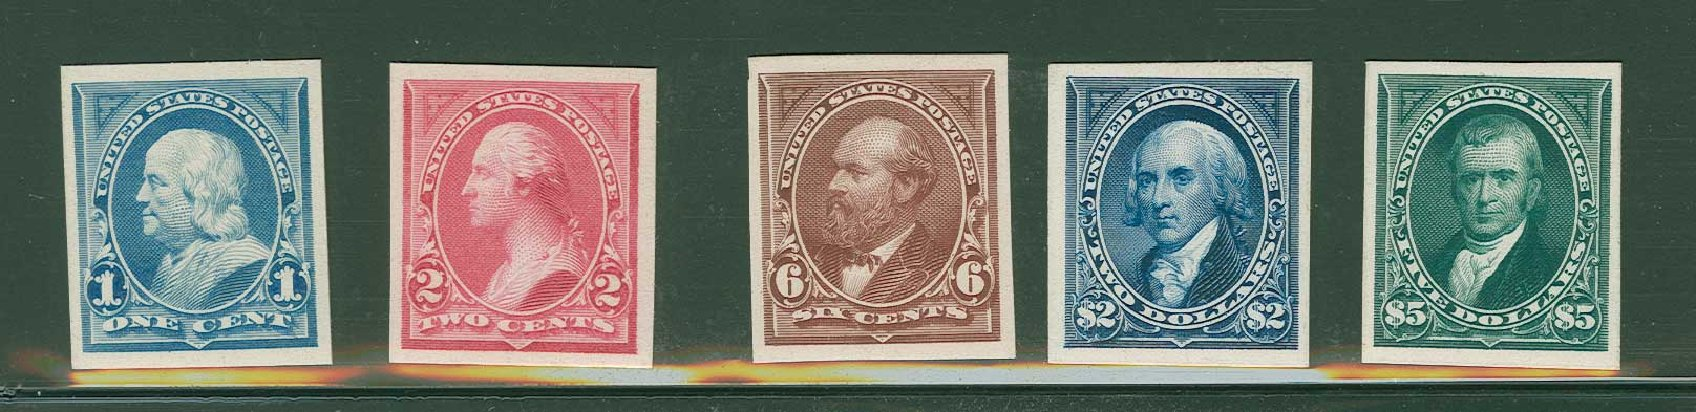 US Stamp Price Scott Catalog 247: 1894 1c Franklin. H.R. Harmer, Jun 2015, Sale 3007, Lot 3053